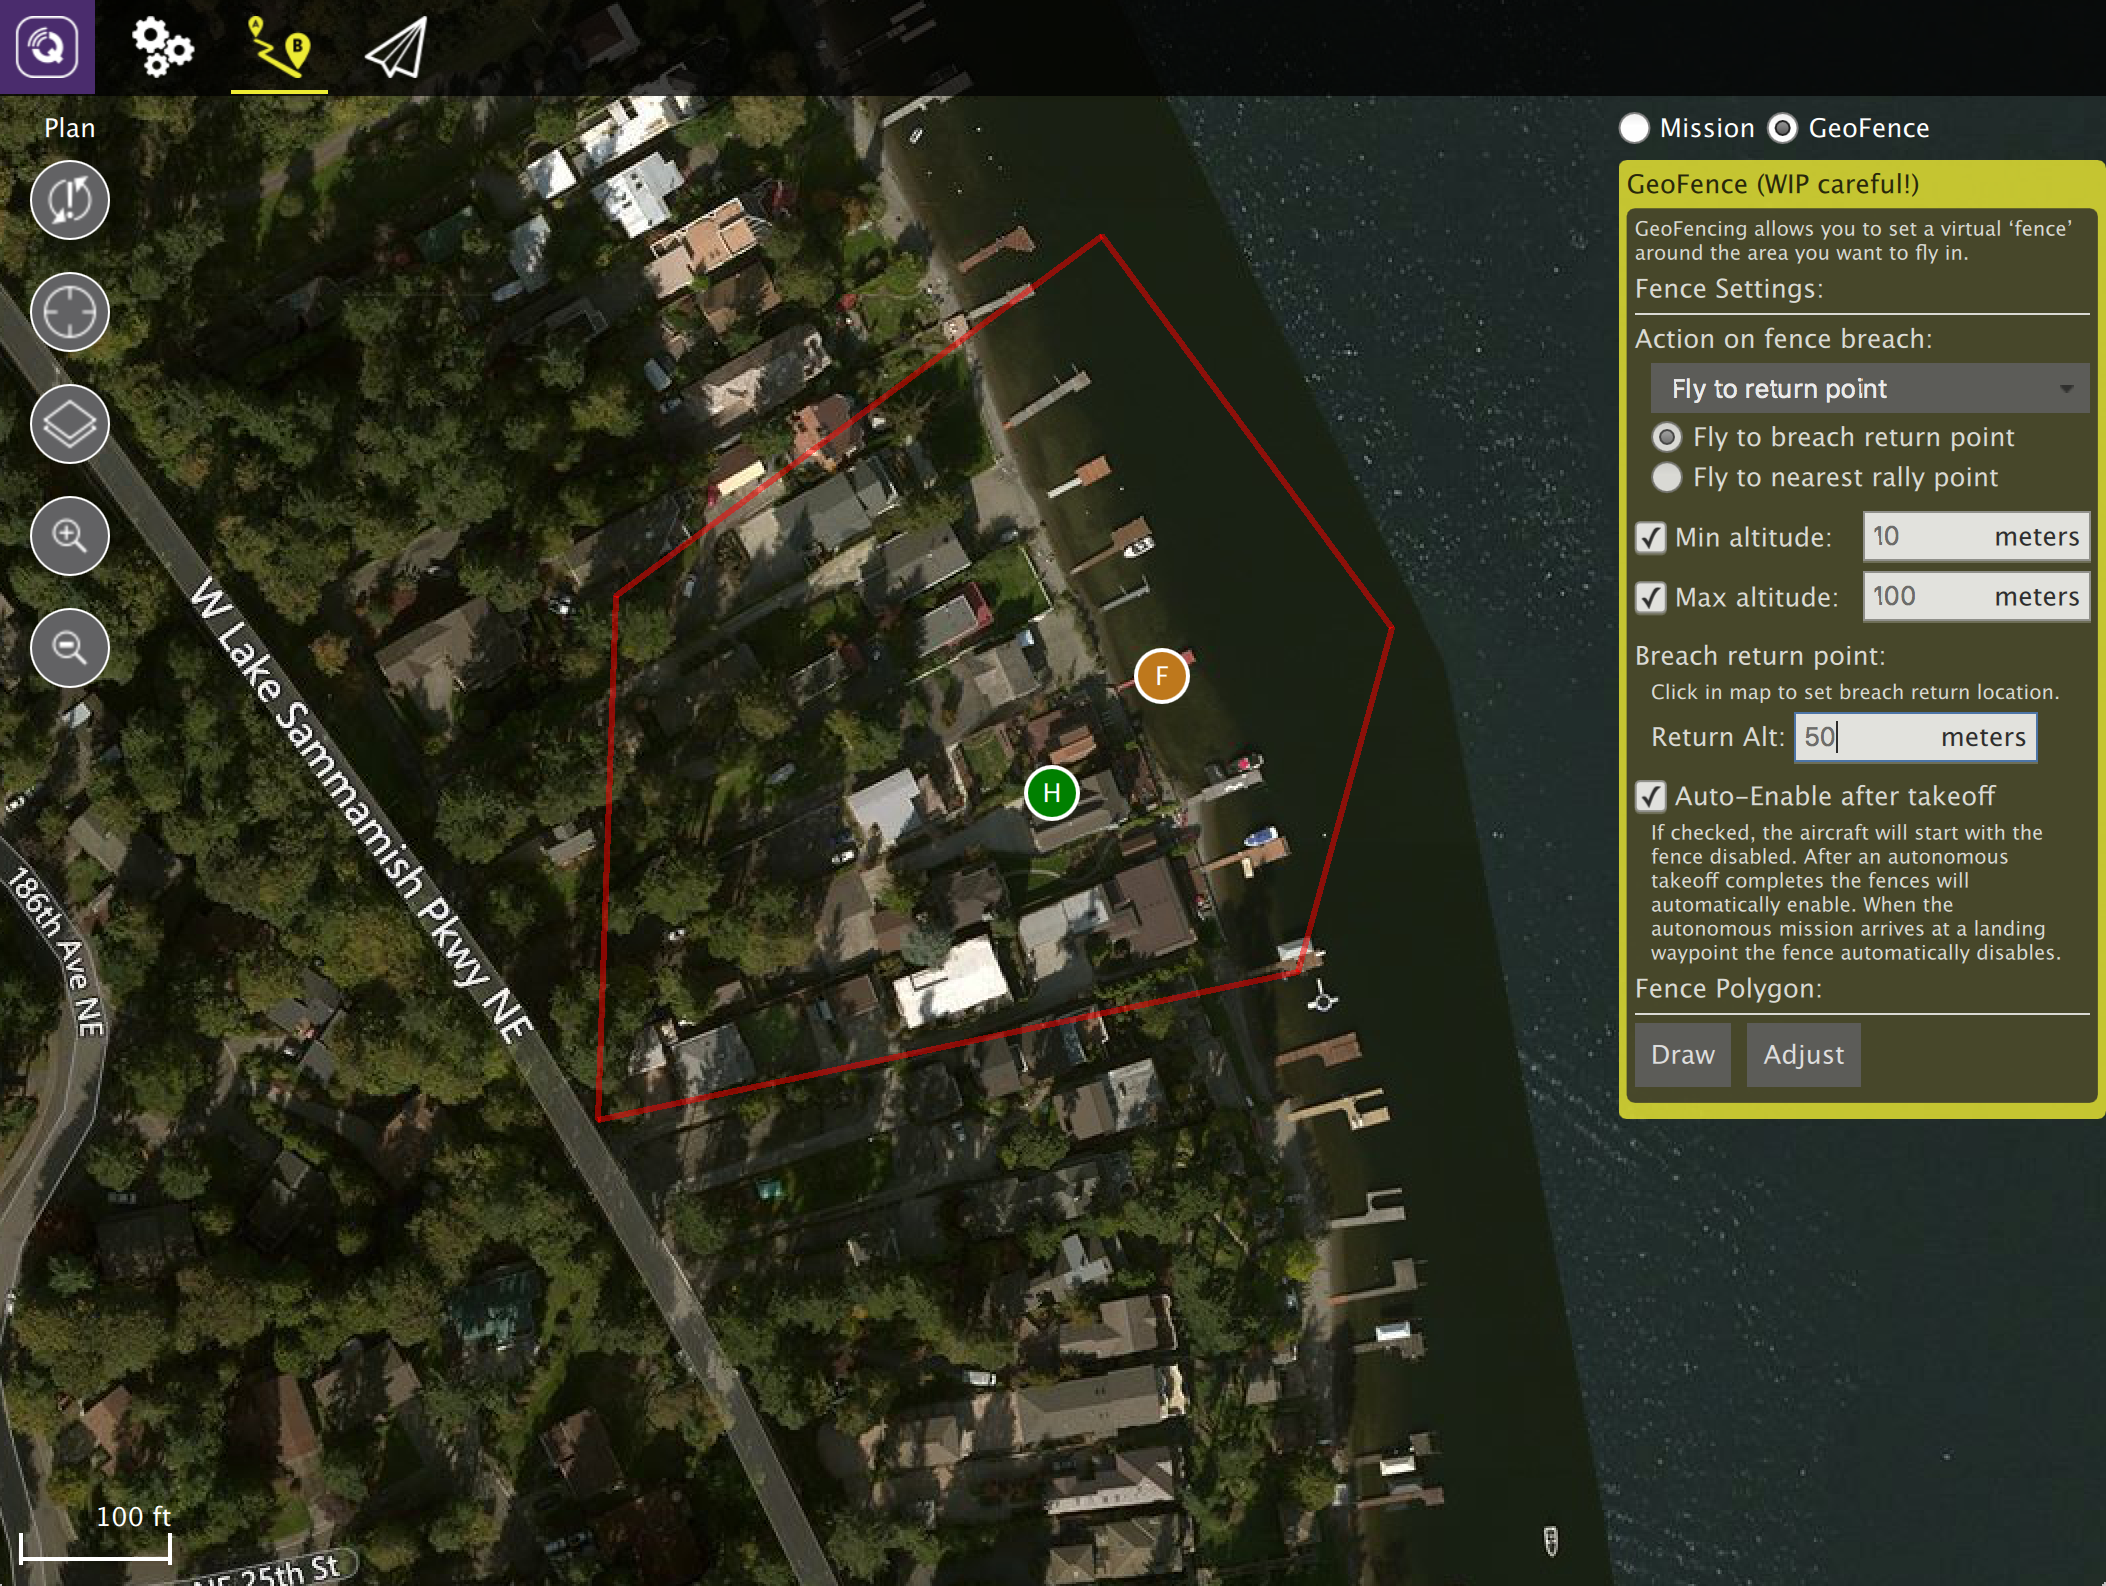 Announcing ArduPlane/Copter GeoFence support in